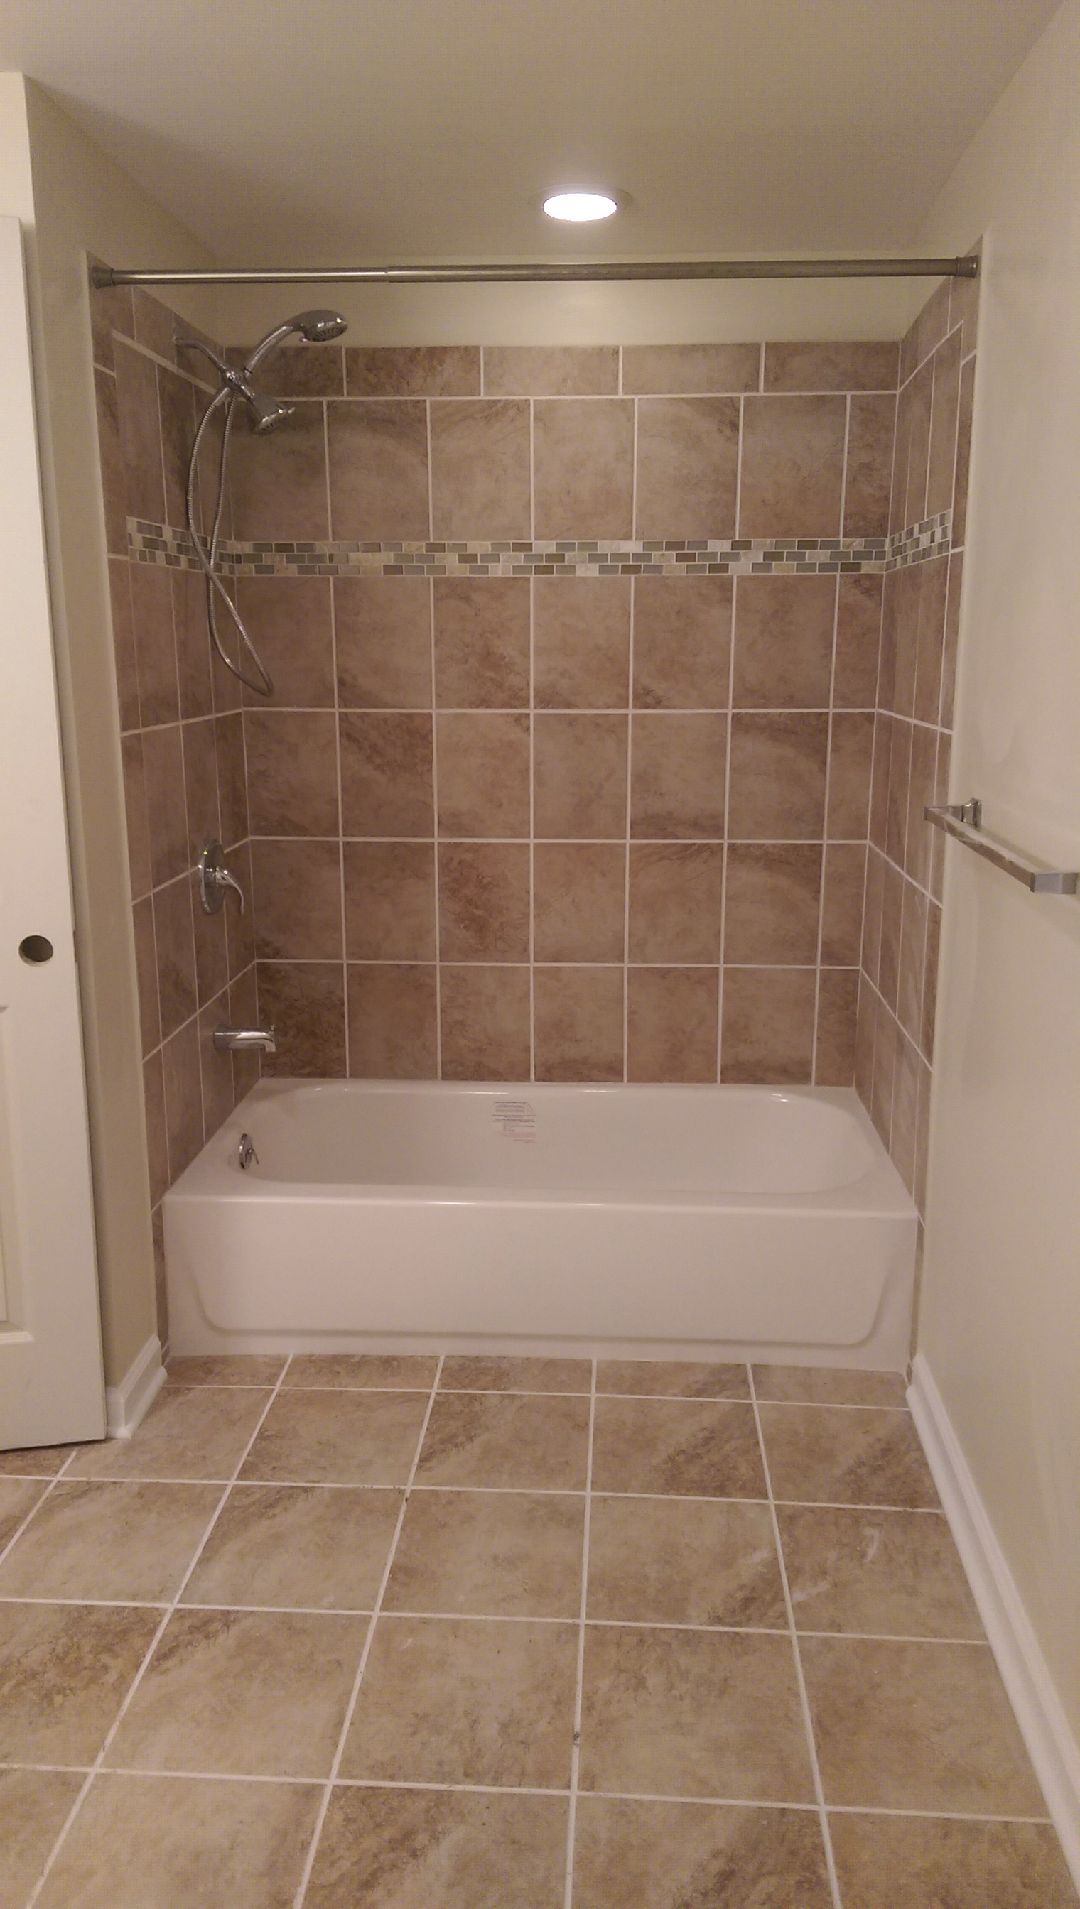 Tile and flooring 08053